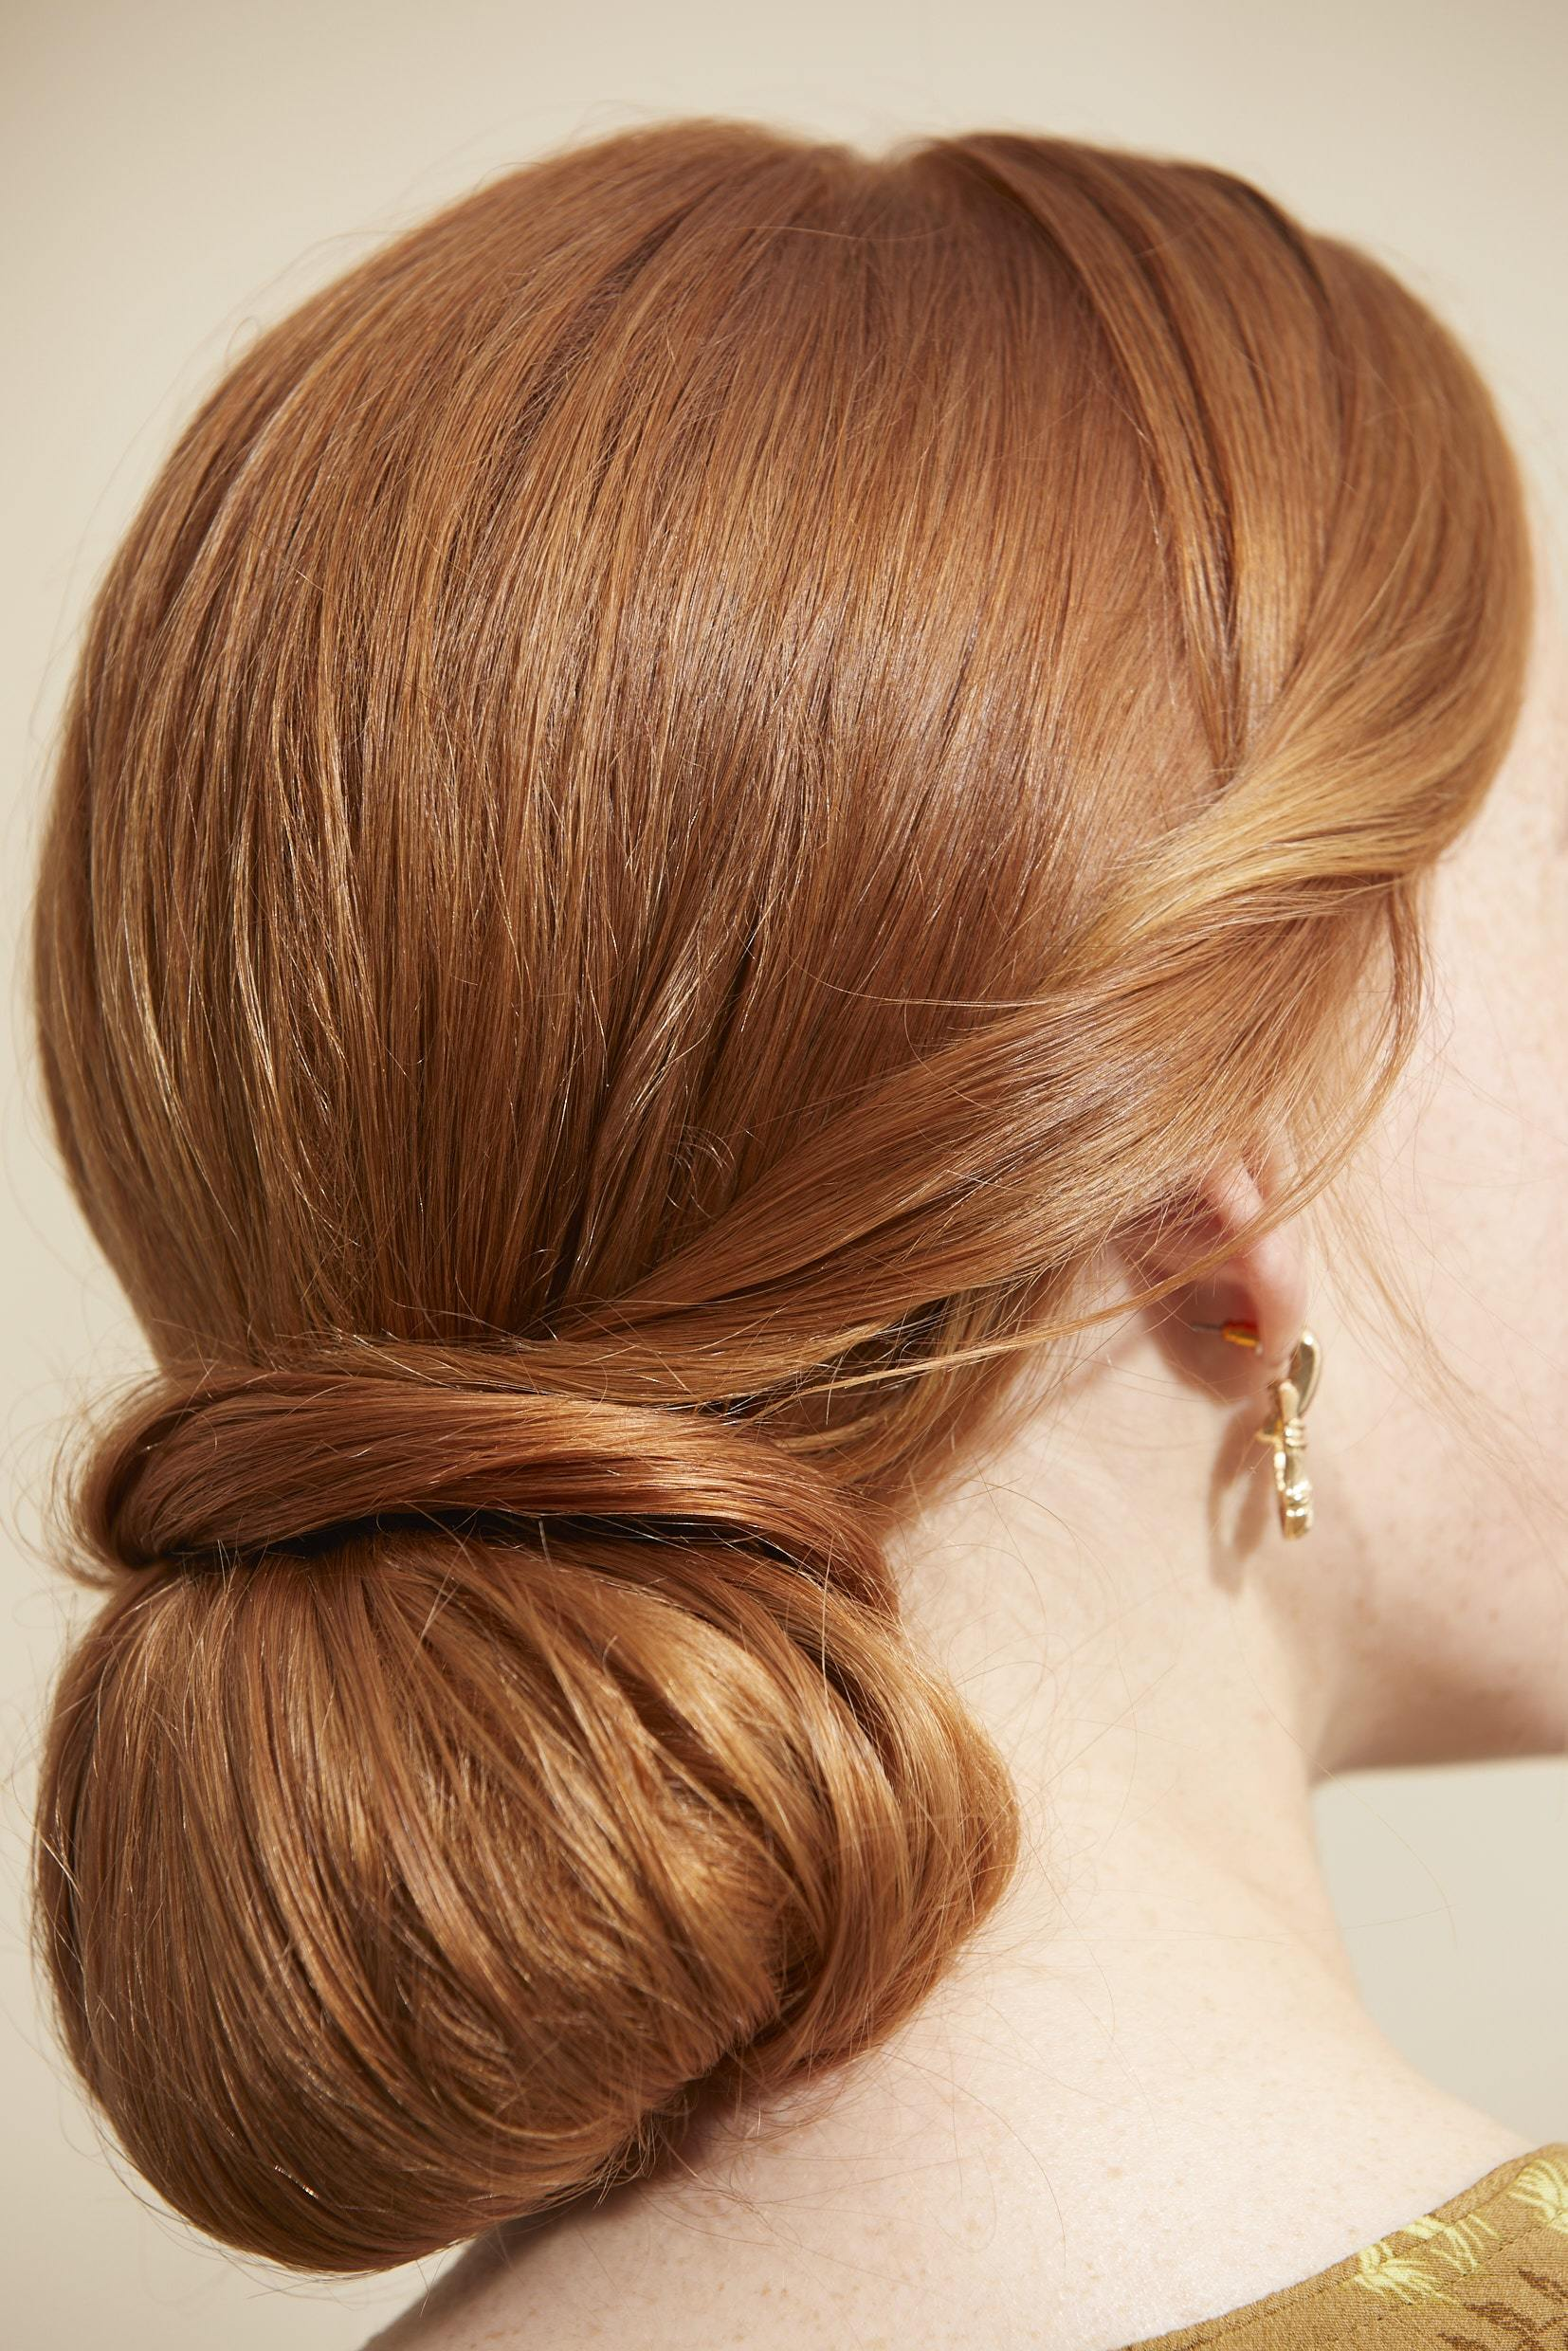 Woman with red hair styled into a retro twisted low bun